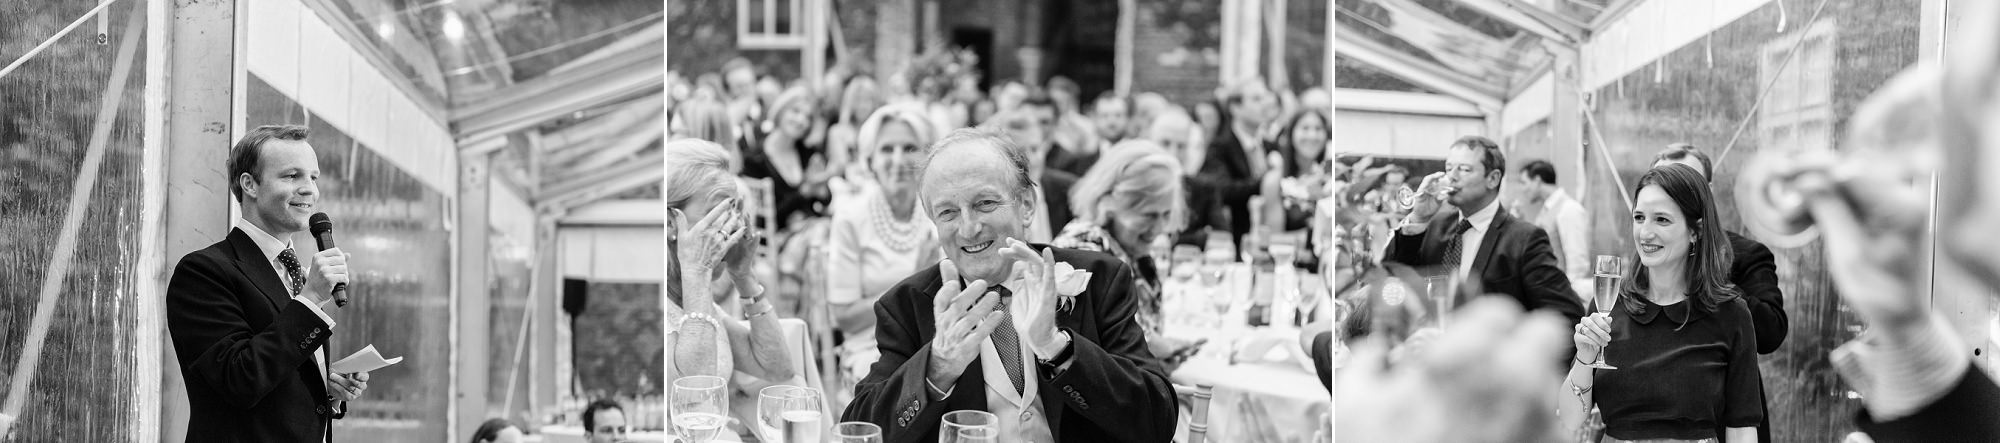 the father of the groom claps